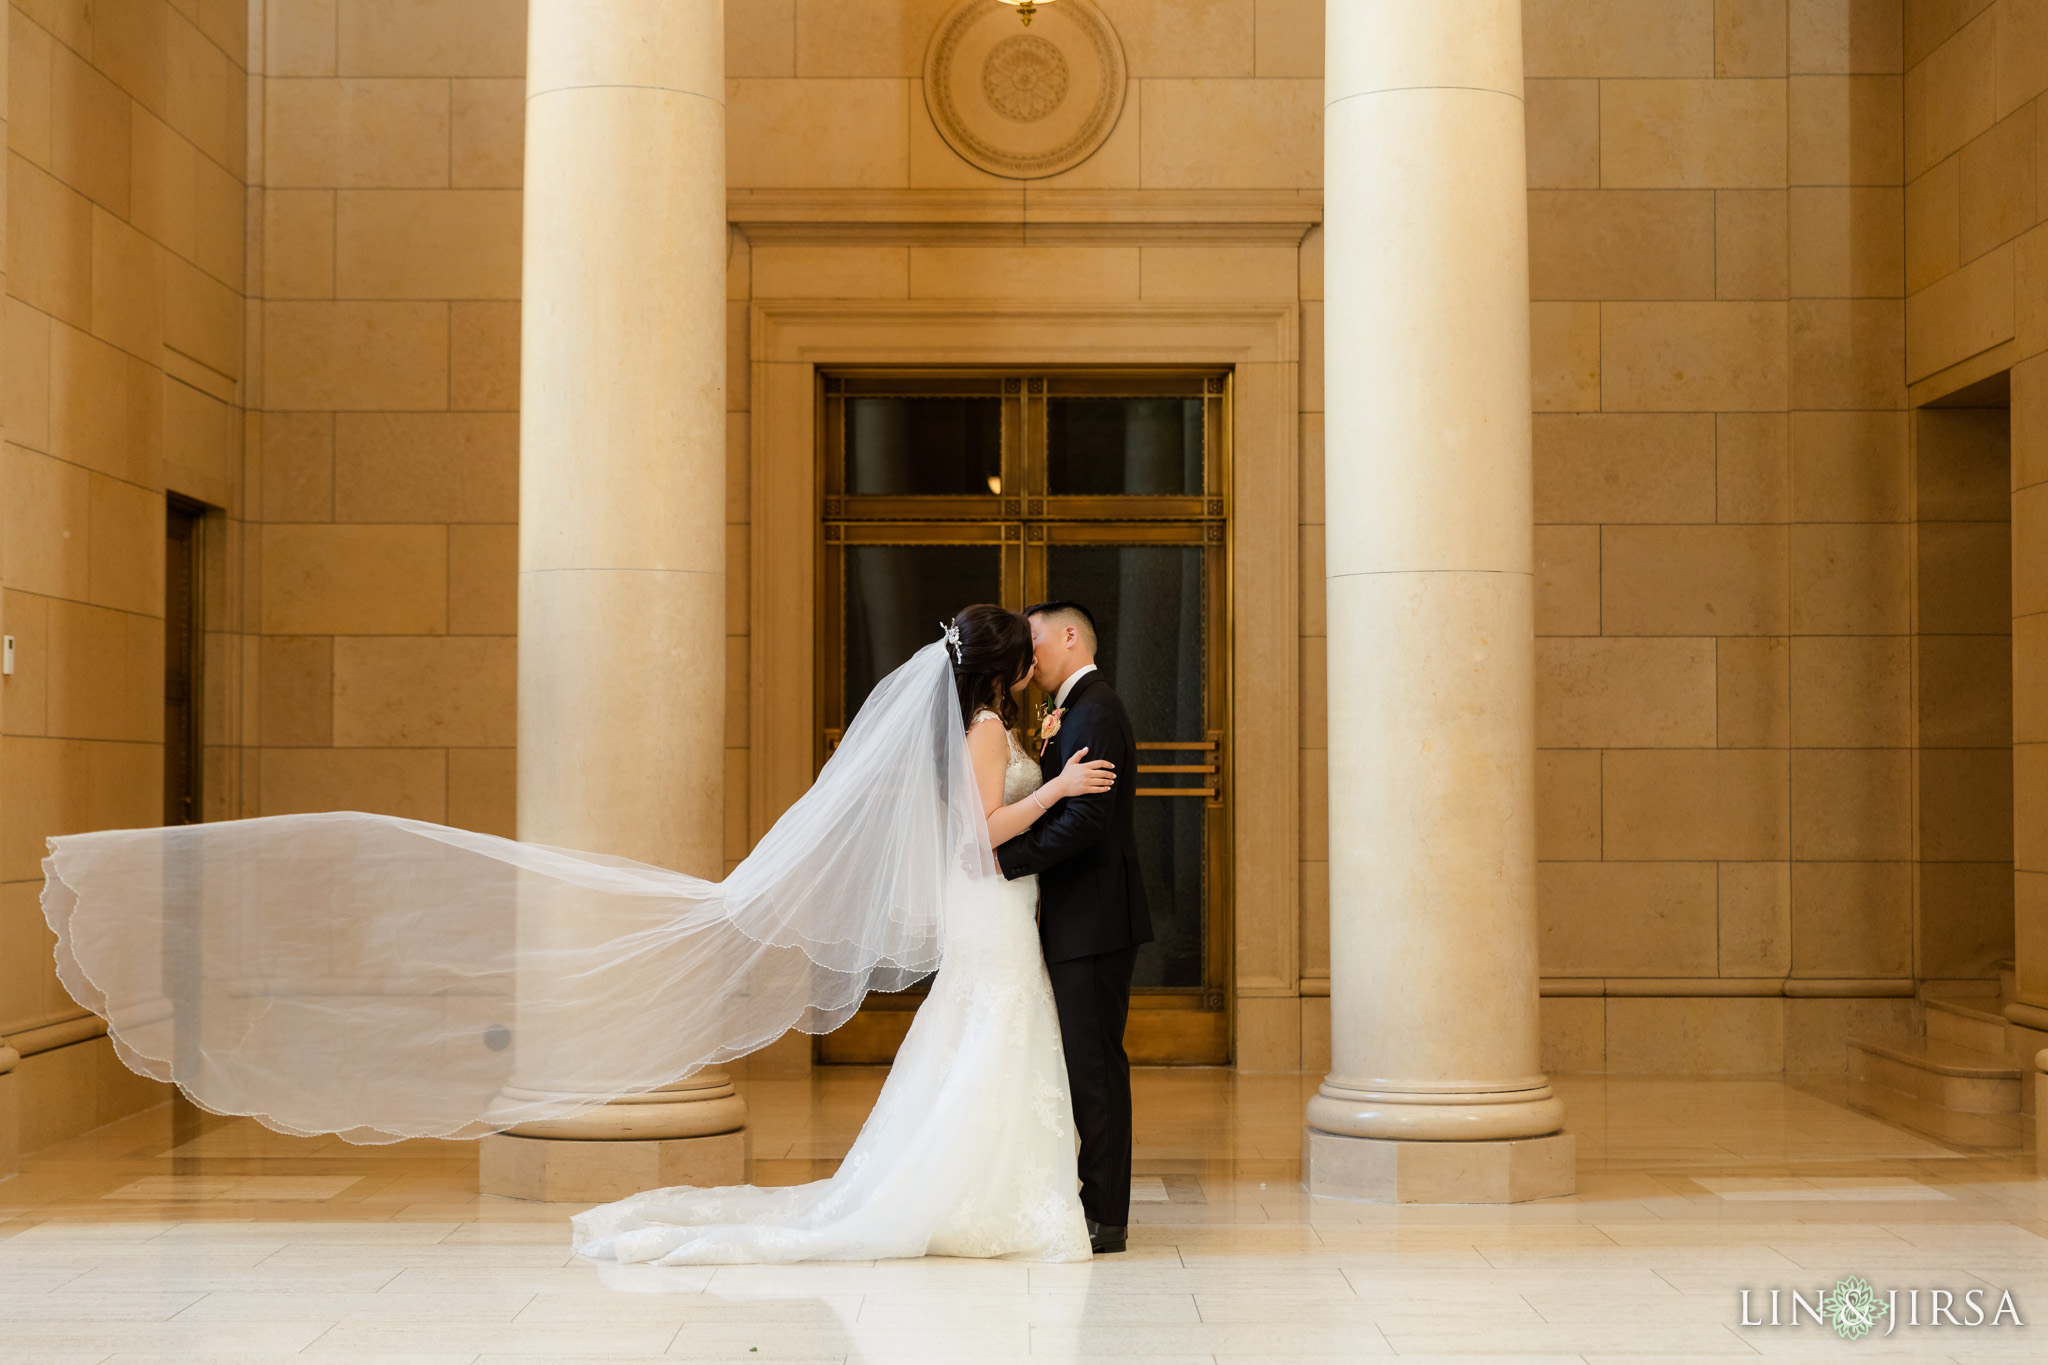 22 Bently Reserve San Francisco Destination Wedding Photographer